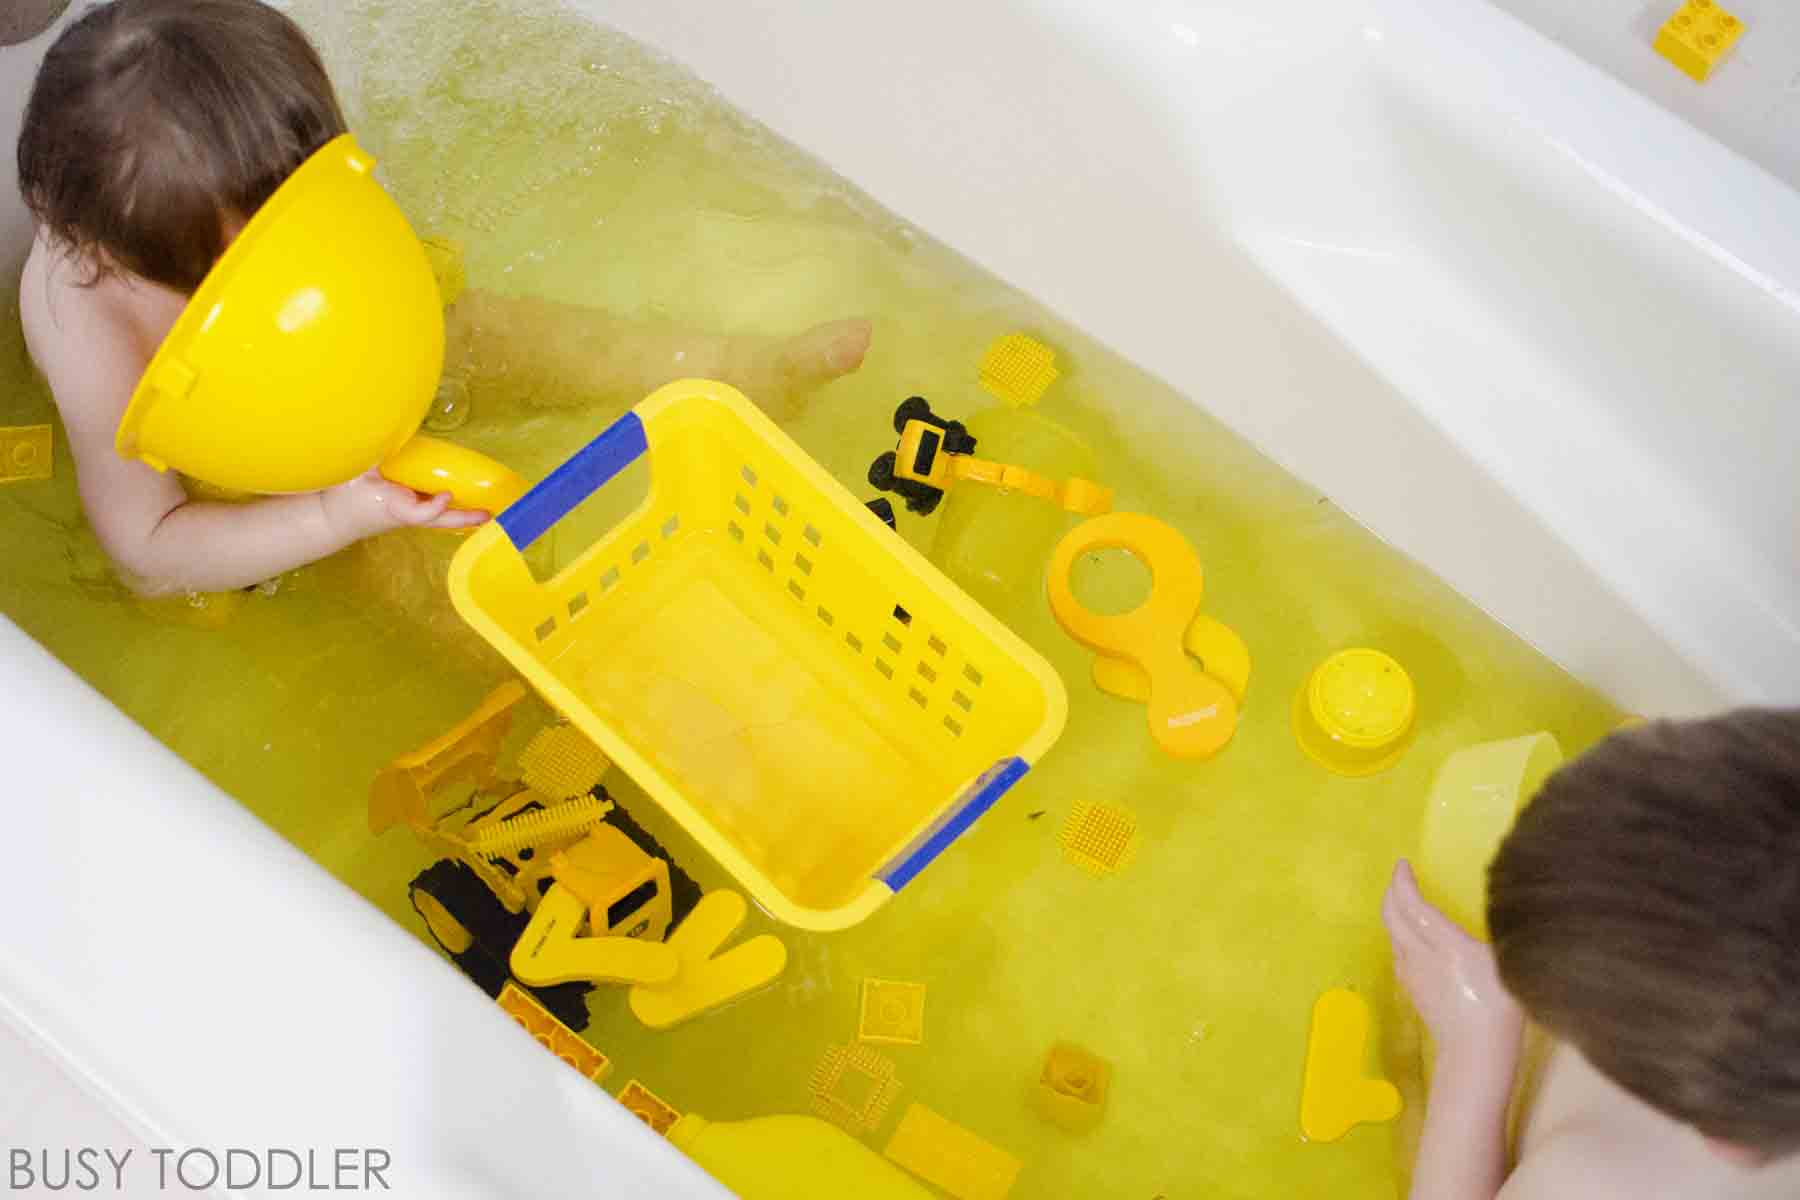 Color Bath Toddler Activity - Busy Toddler